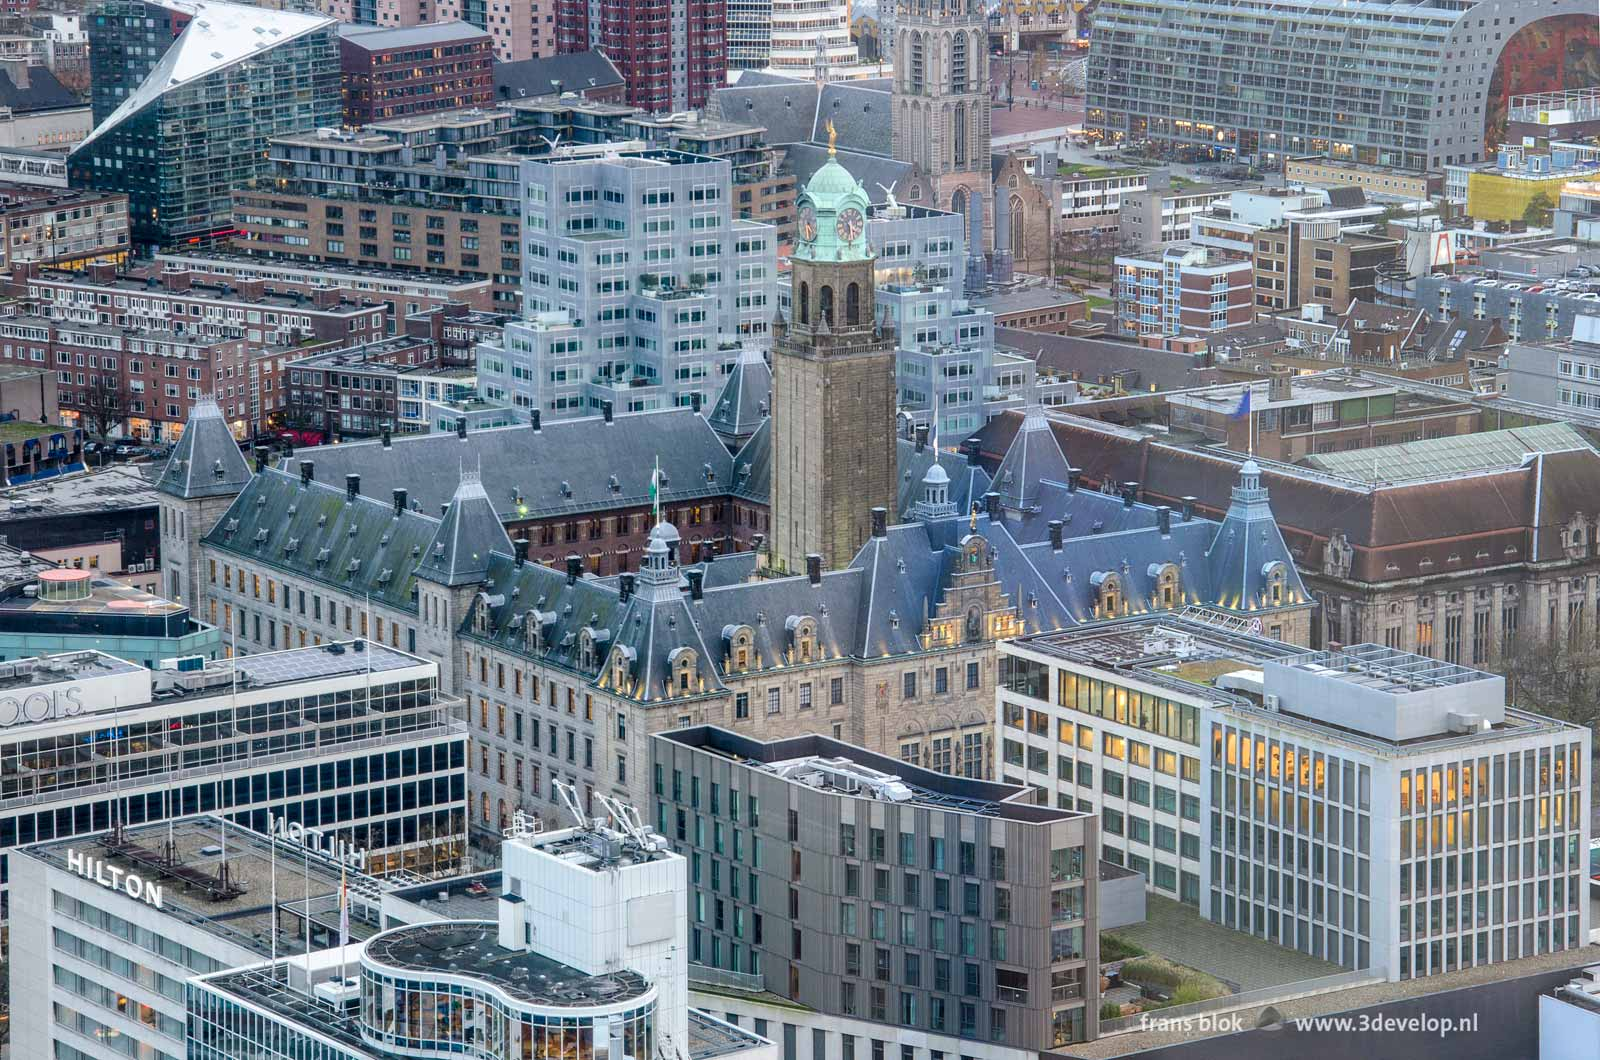 The Rotterdam town hall seen from the Delftse Poort building with behind it Timmerhuis, Saint Lawrence Church and the Markthal